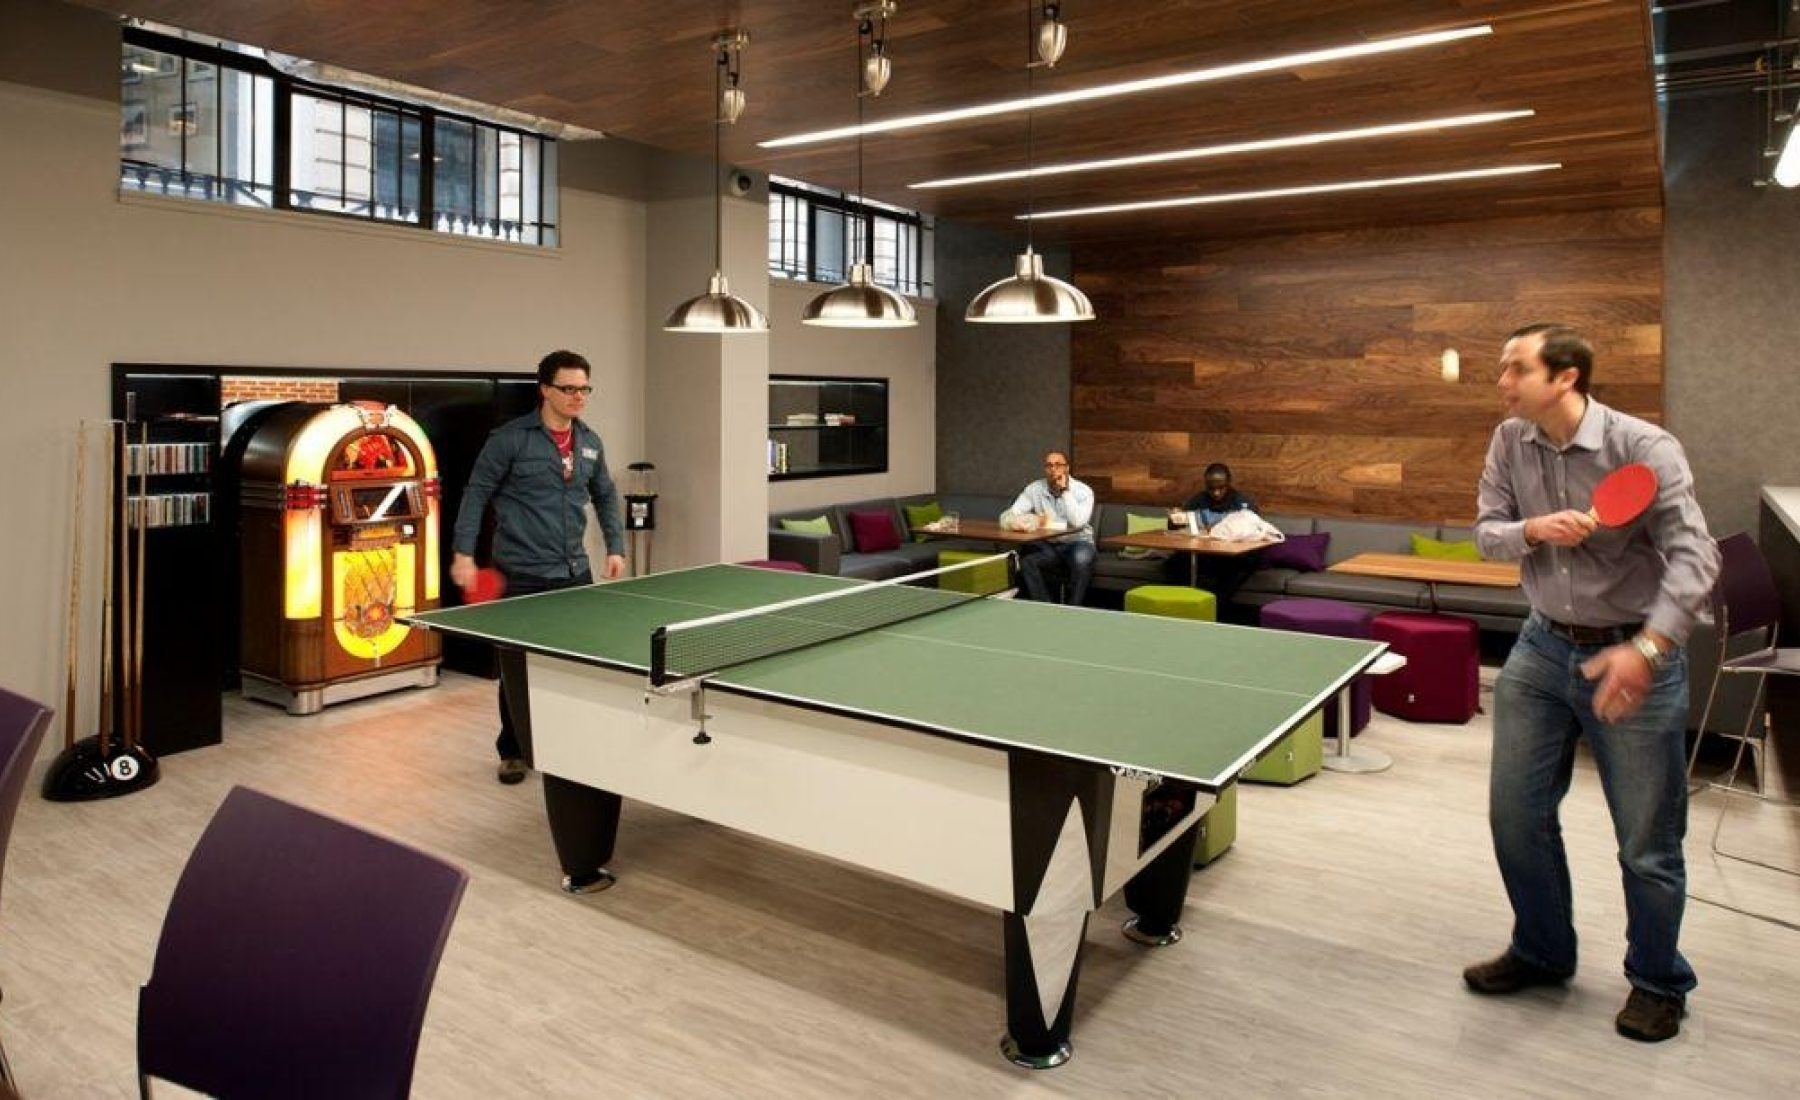 Ping-pong potential - Global Times